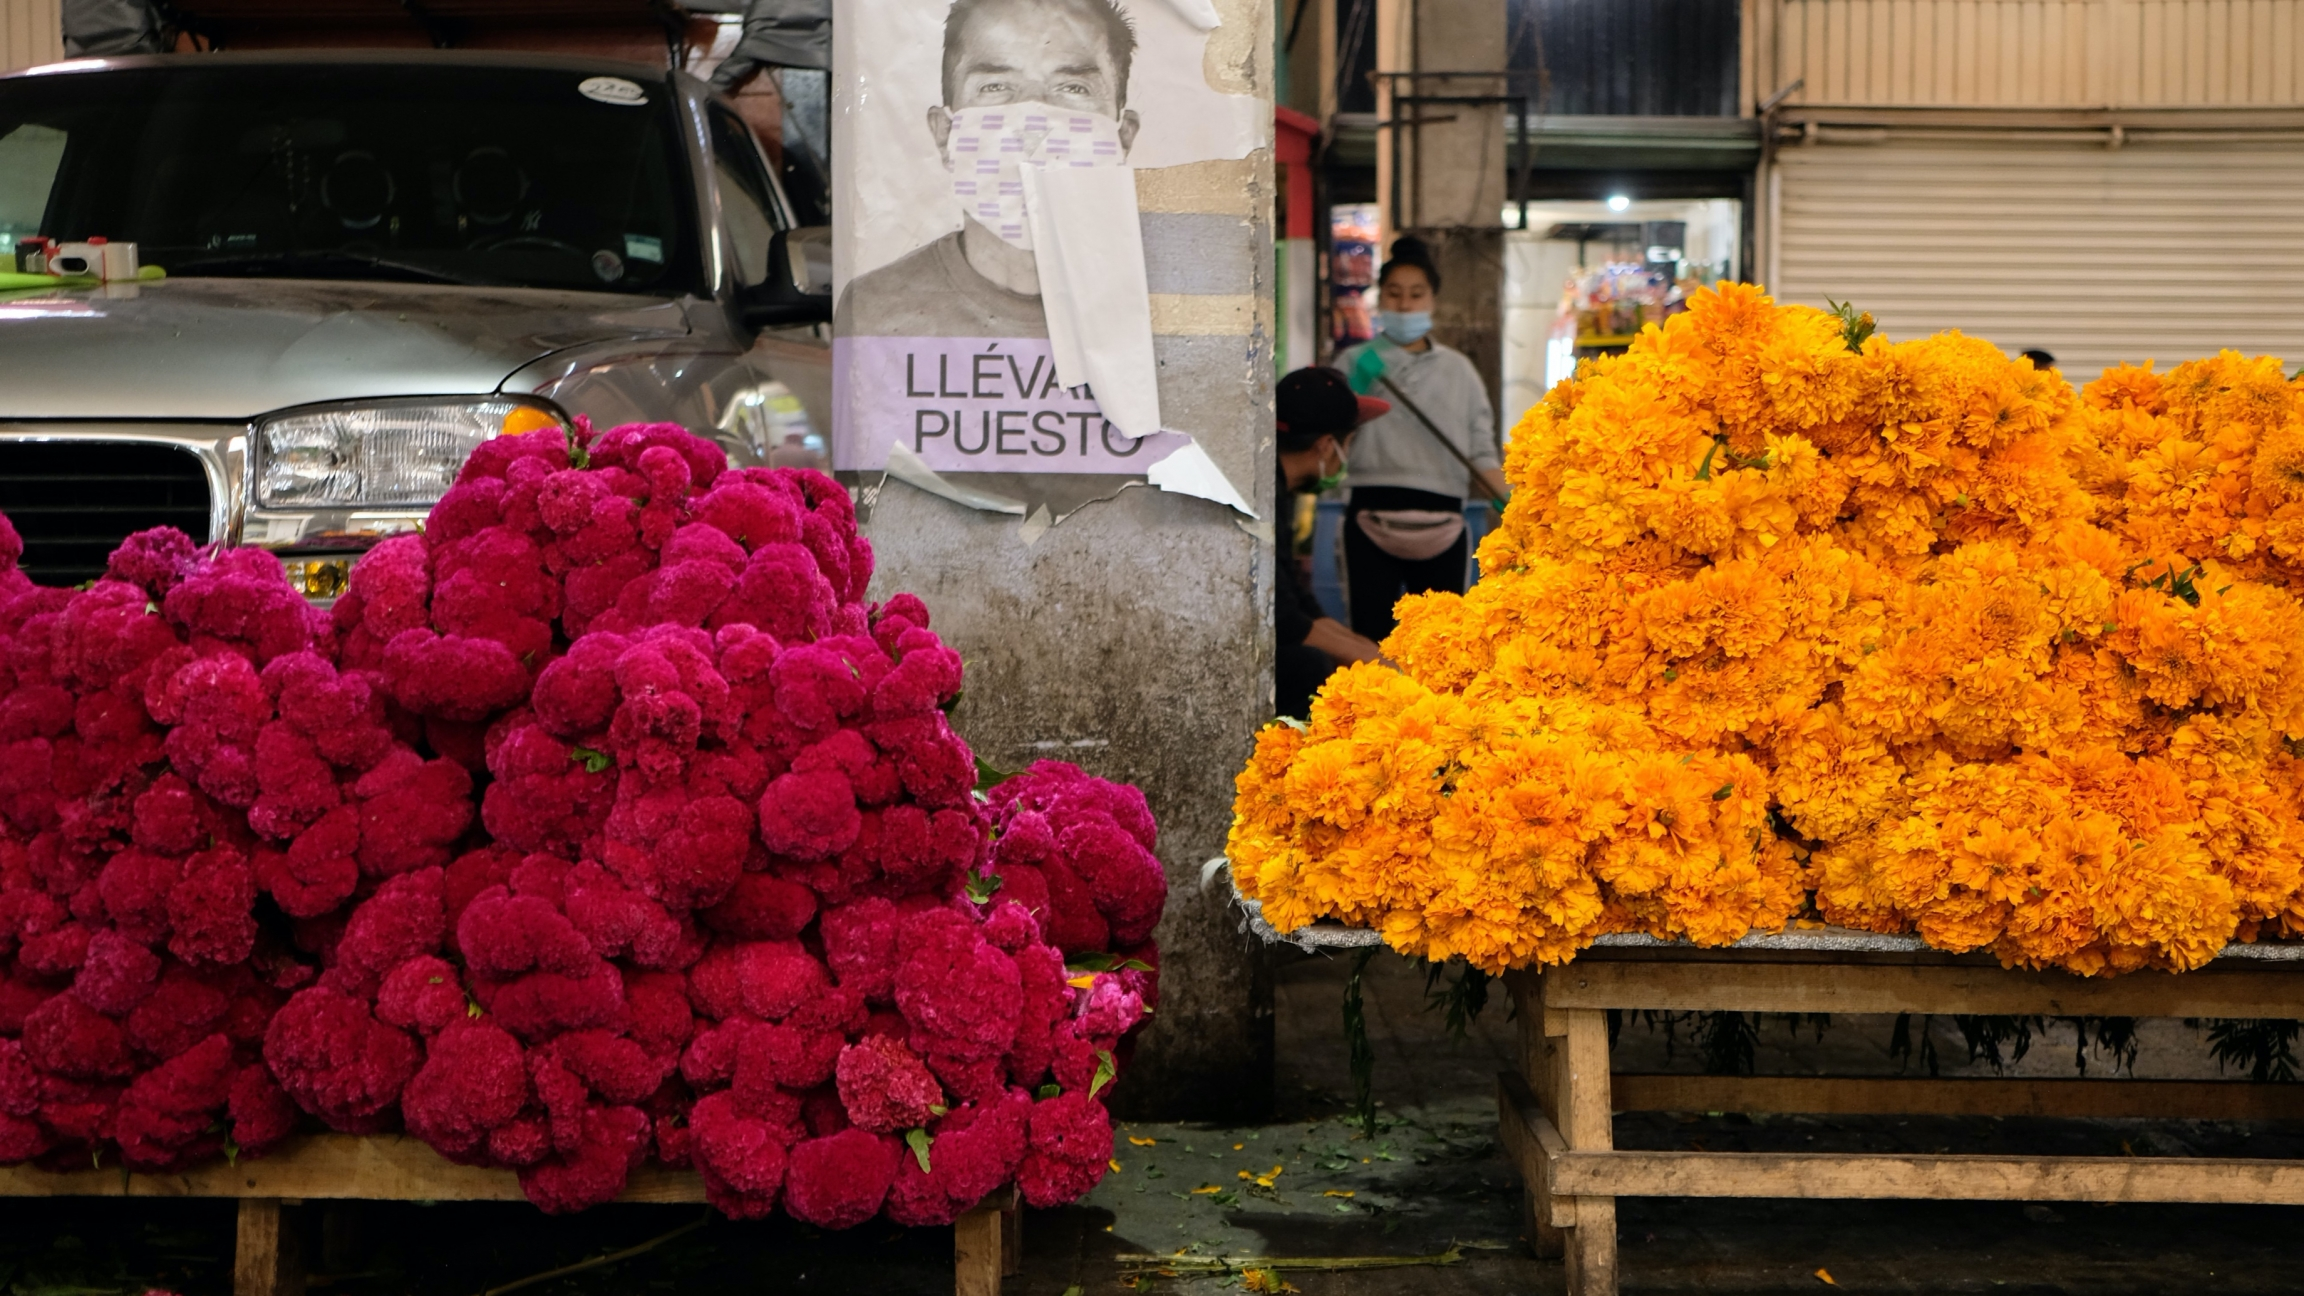 A public service announcement encouraging face masks is flanked by marigolds and terciopelo flowers at Mercado de Jamaica.